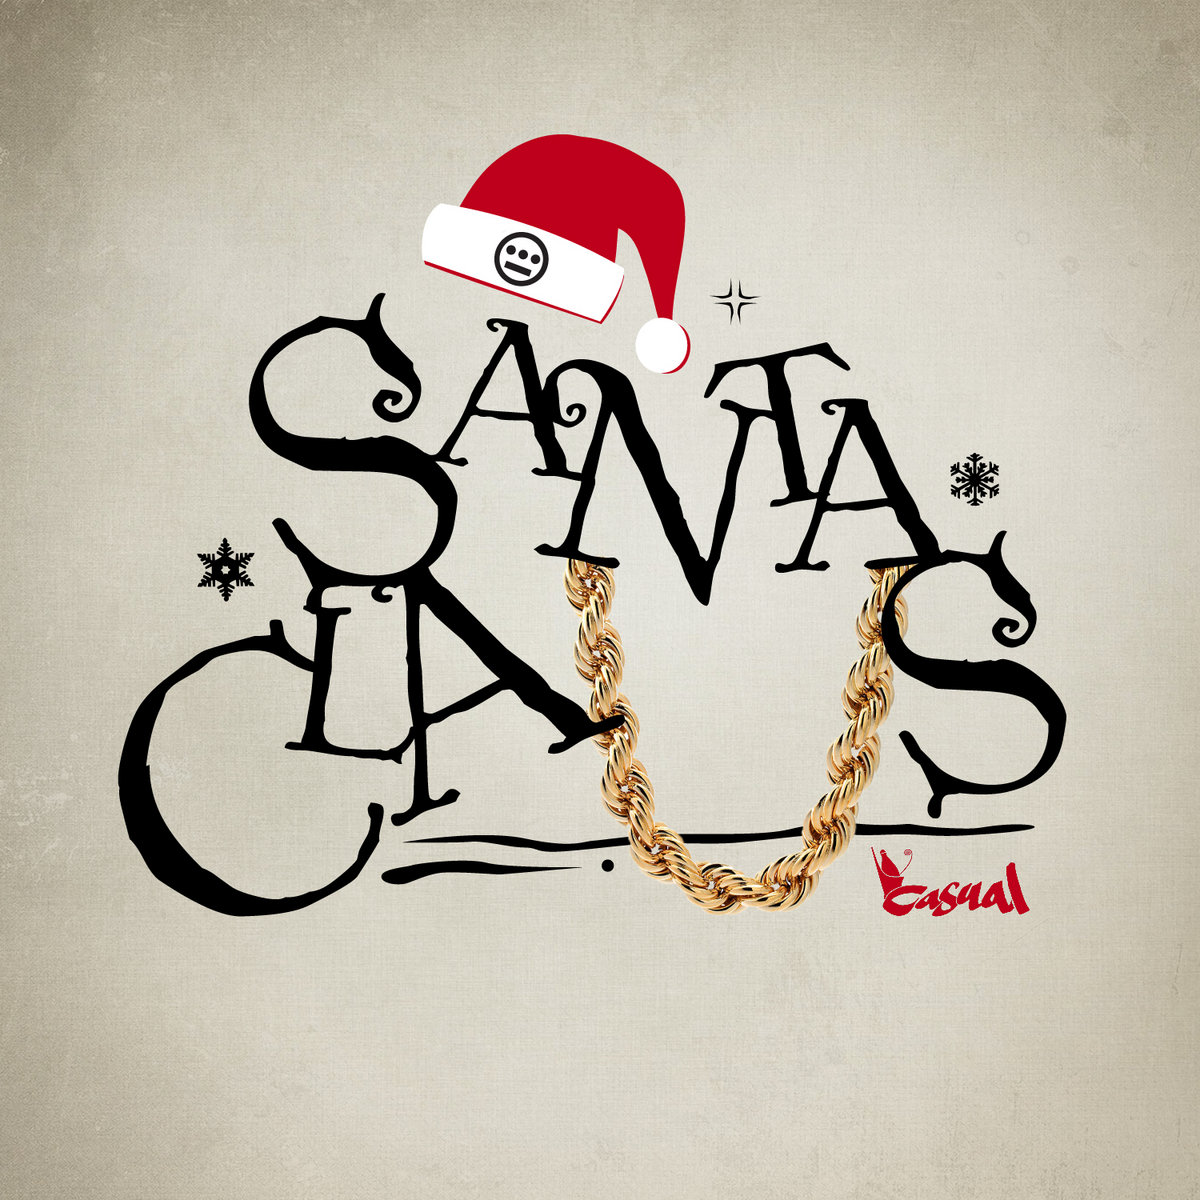 hispanic singles in santa claus Santa pictures for the holiday  what we will do in this section is list those places and events whose primary offering is a picture with santa claus and perhaps .